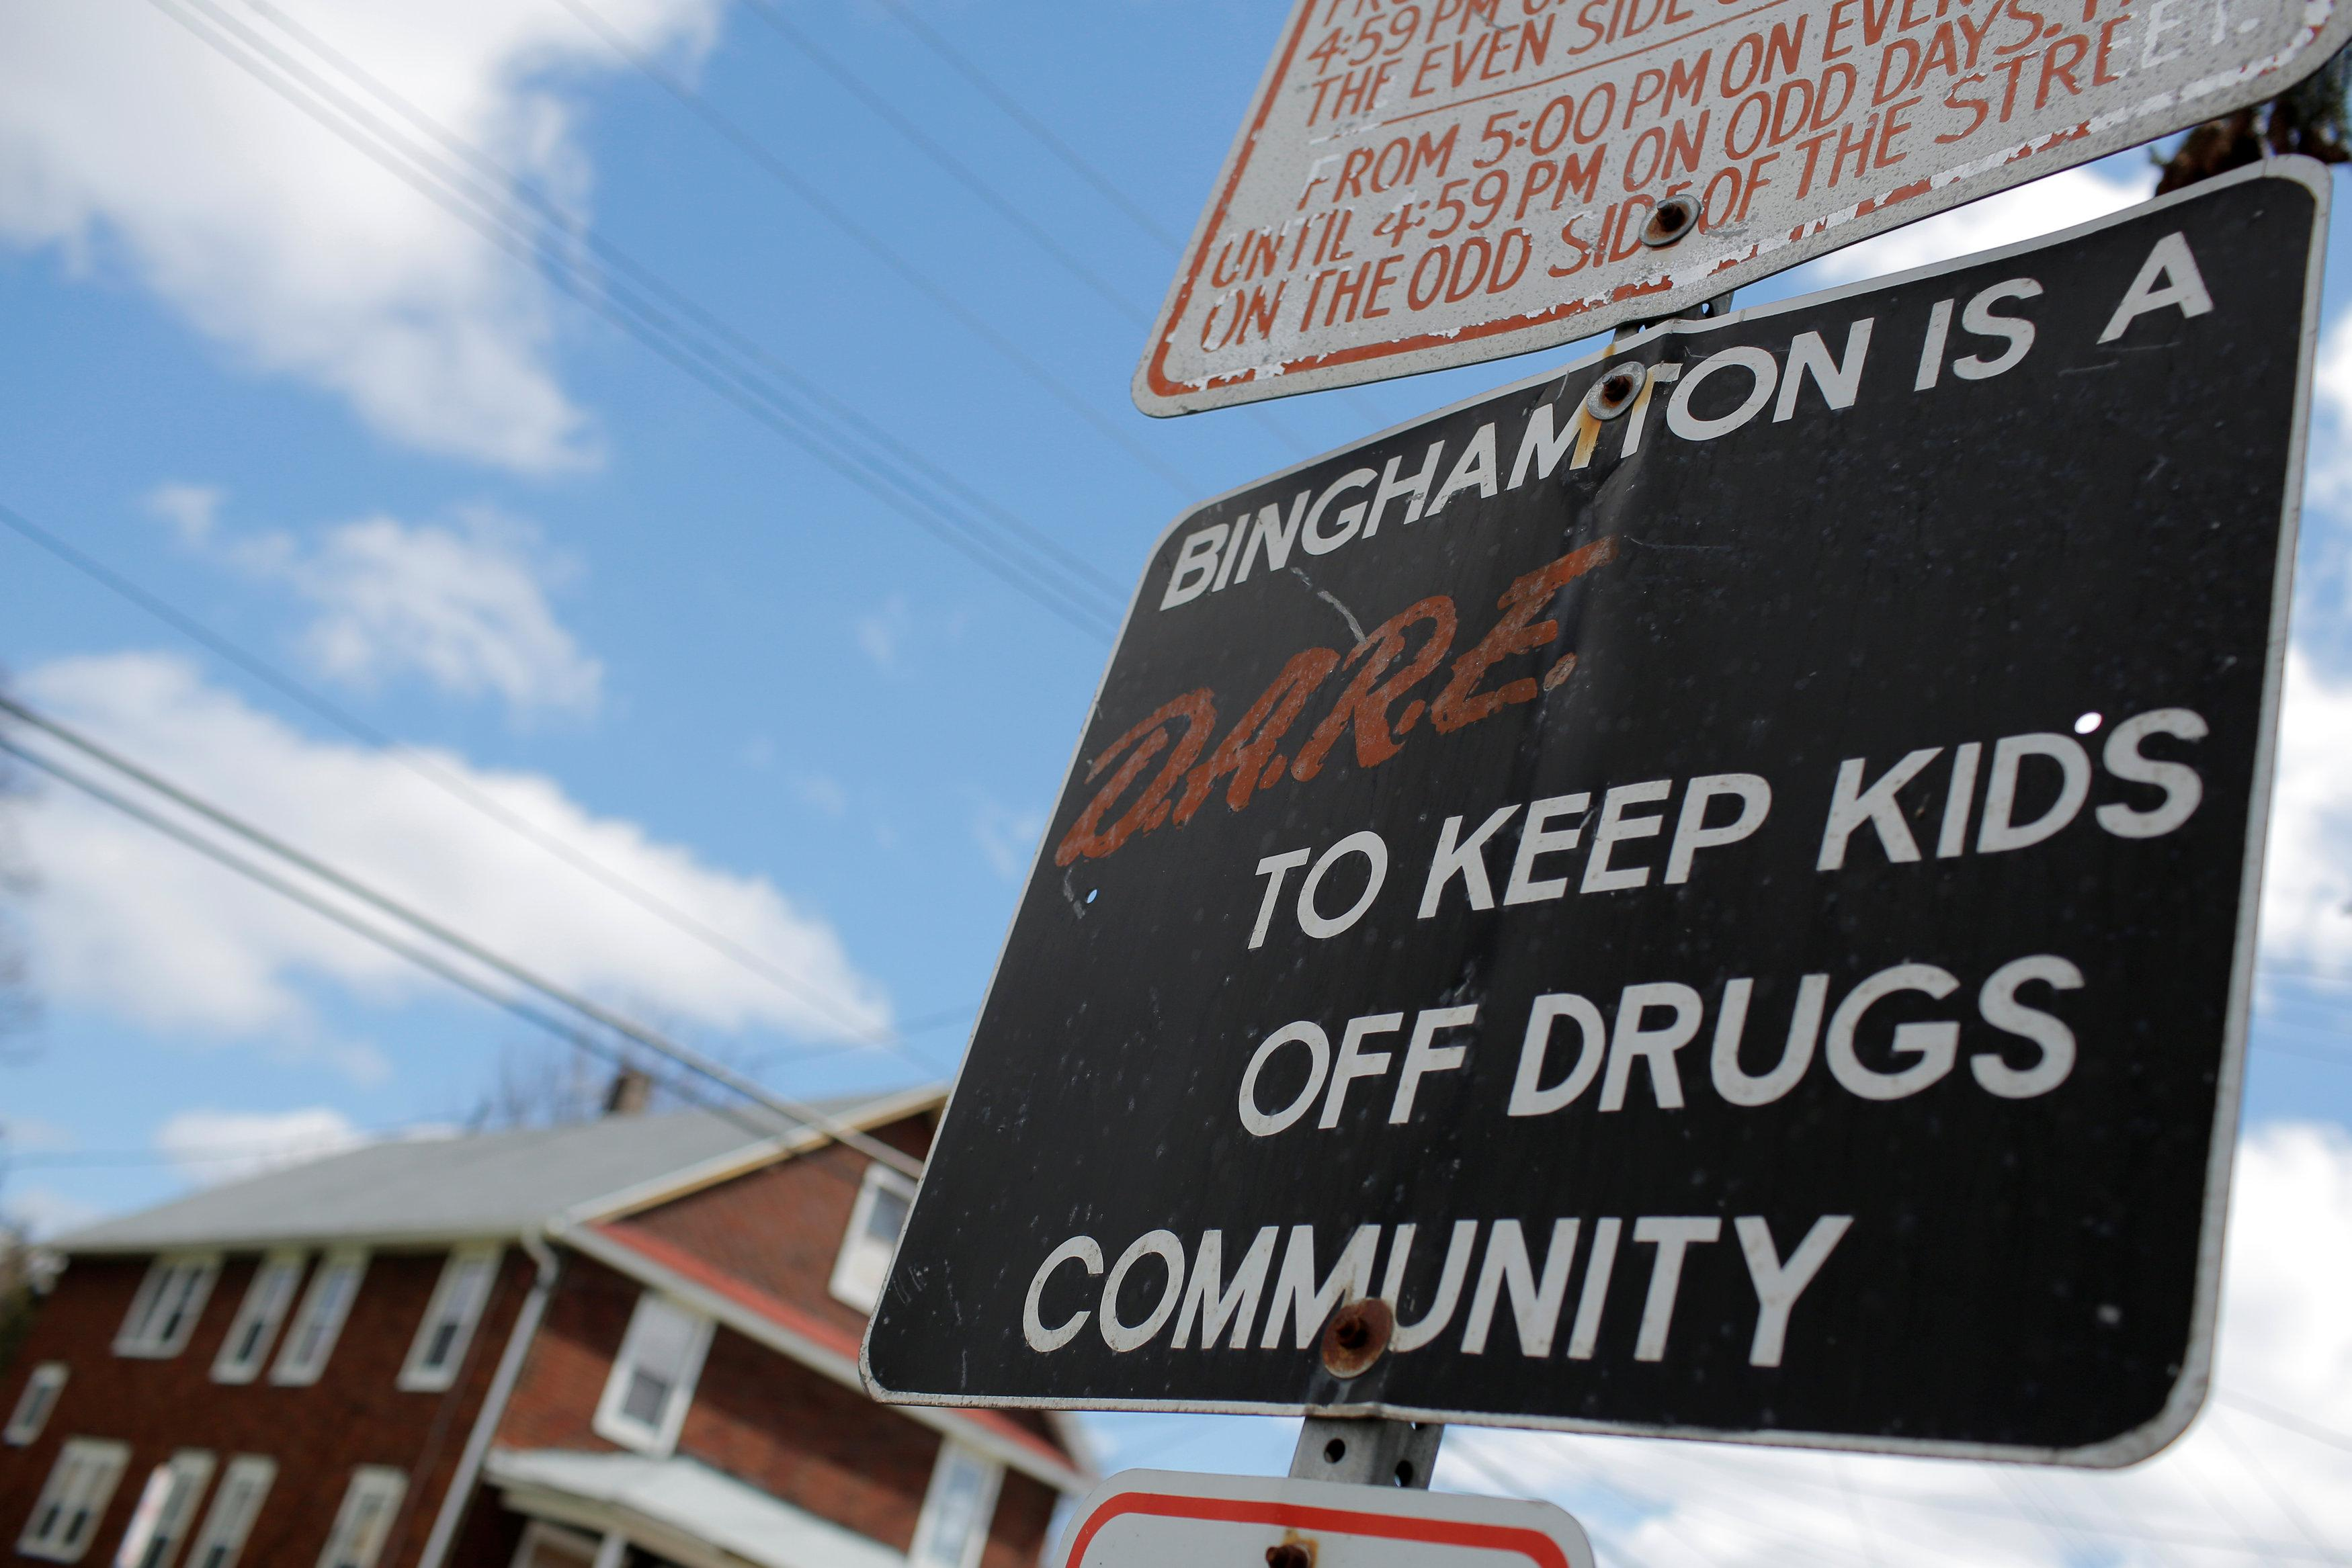 Voters in opioid-plagued districts demand solutions from